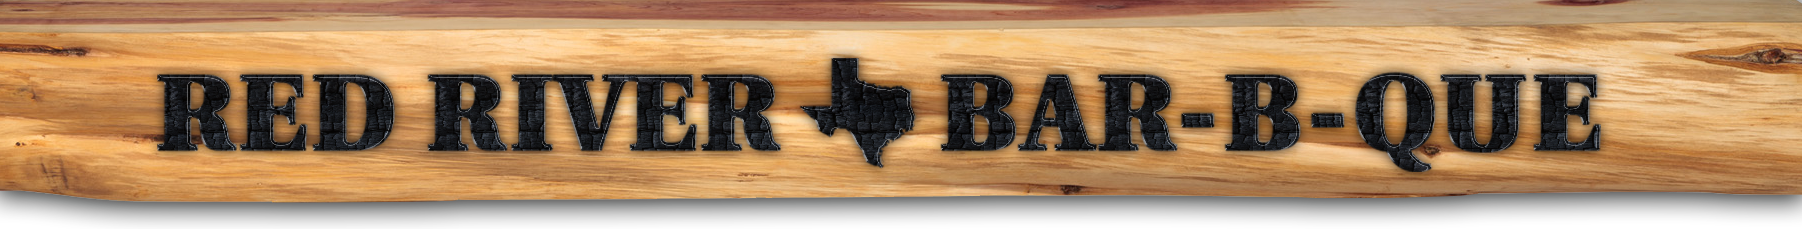 Red River BBQ Wood Background